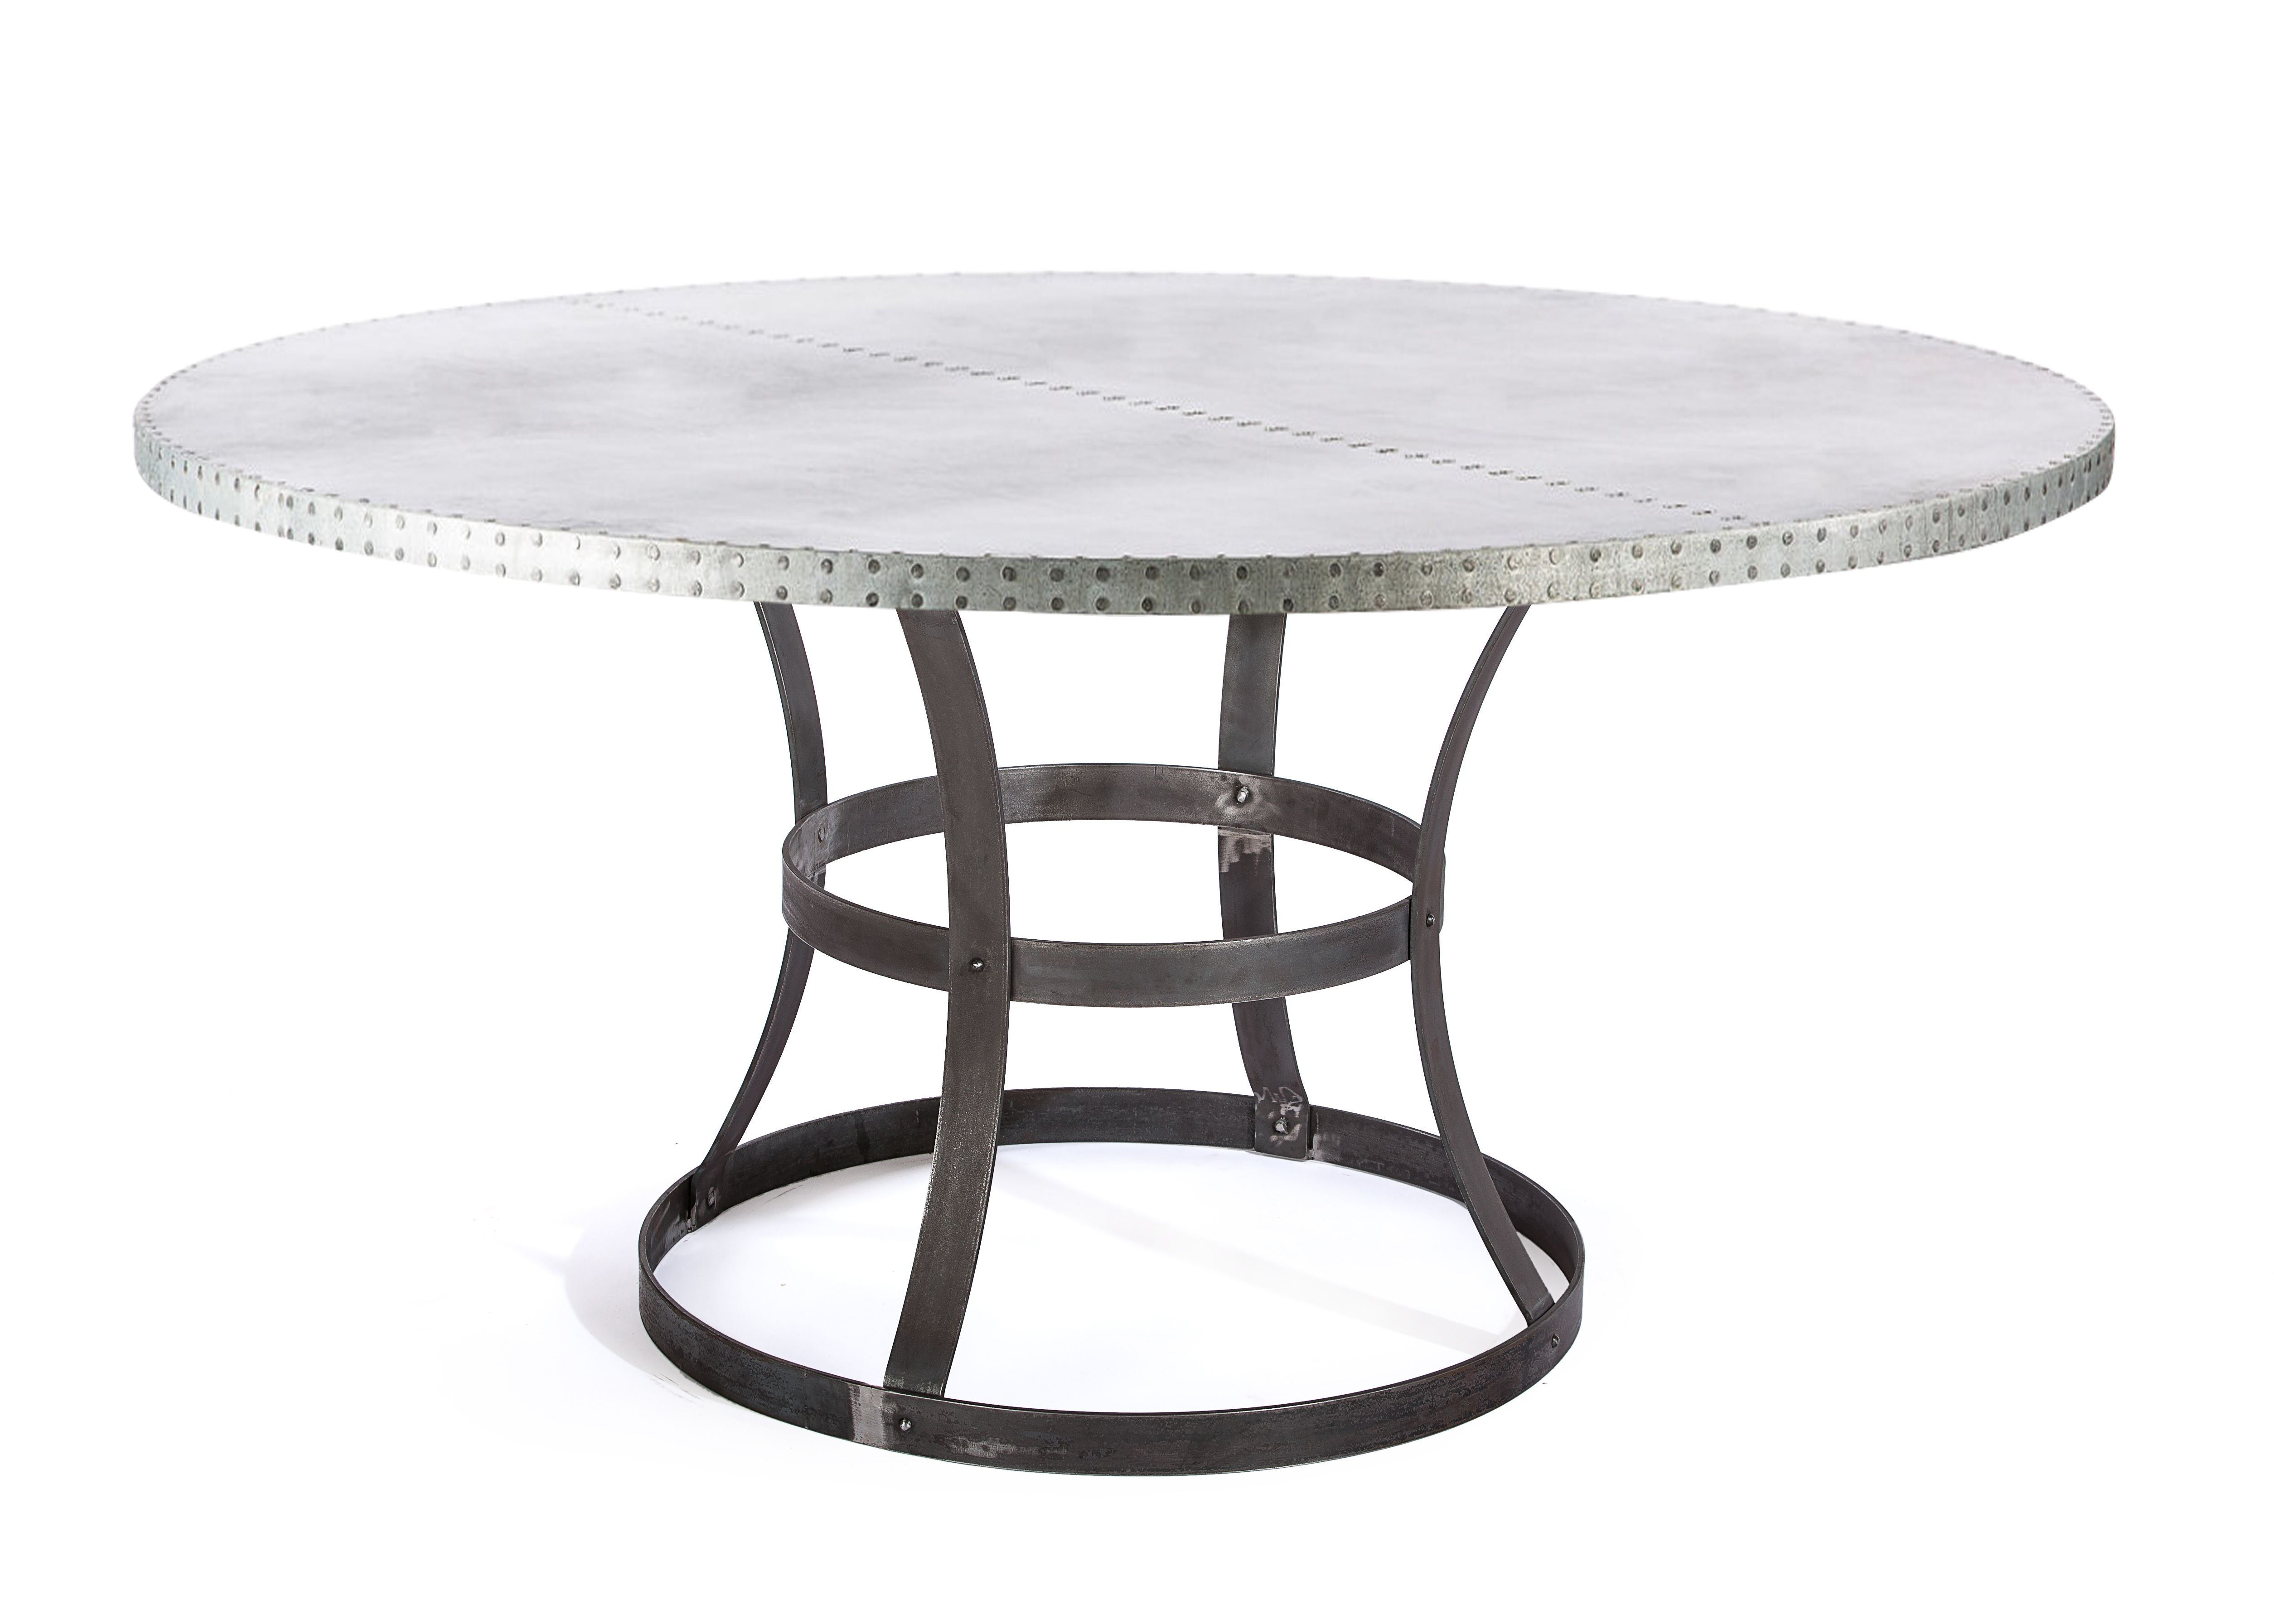 custom zinc table dining madera steel ring round accent made top pottery barn floor lamp replacement parts grey marble concrete unfinished base mid century modern furniture end